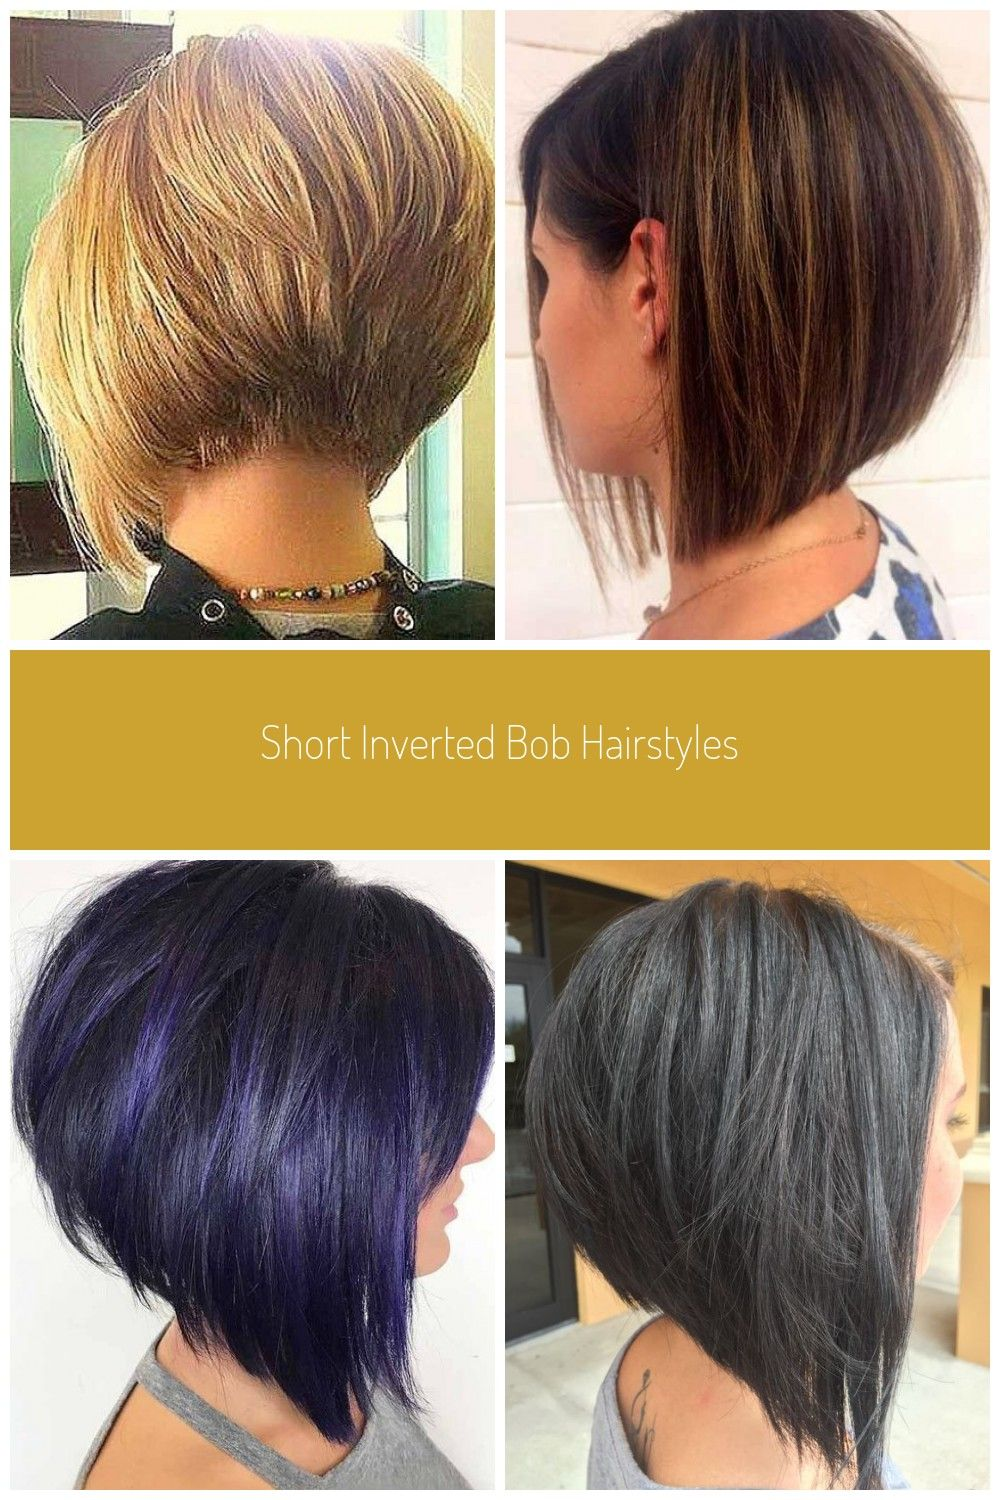 Stacked Bob Short Inverted Bob Hairstyles Inverted Bob Short Inverted Bob Hairstyles The Undercut In 2020 Inverted Bob Hairstyles Bob Hairstyles Wavy Bob Hairstyles